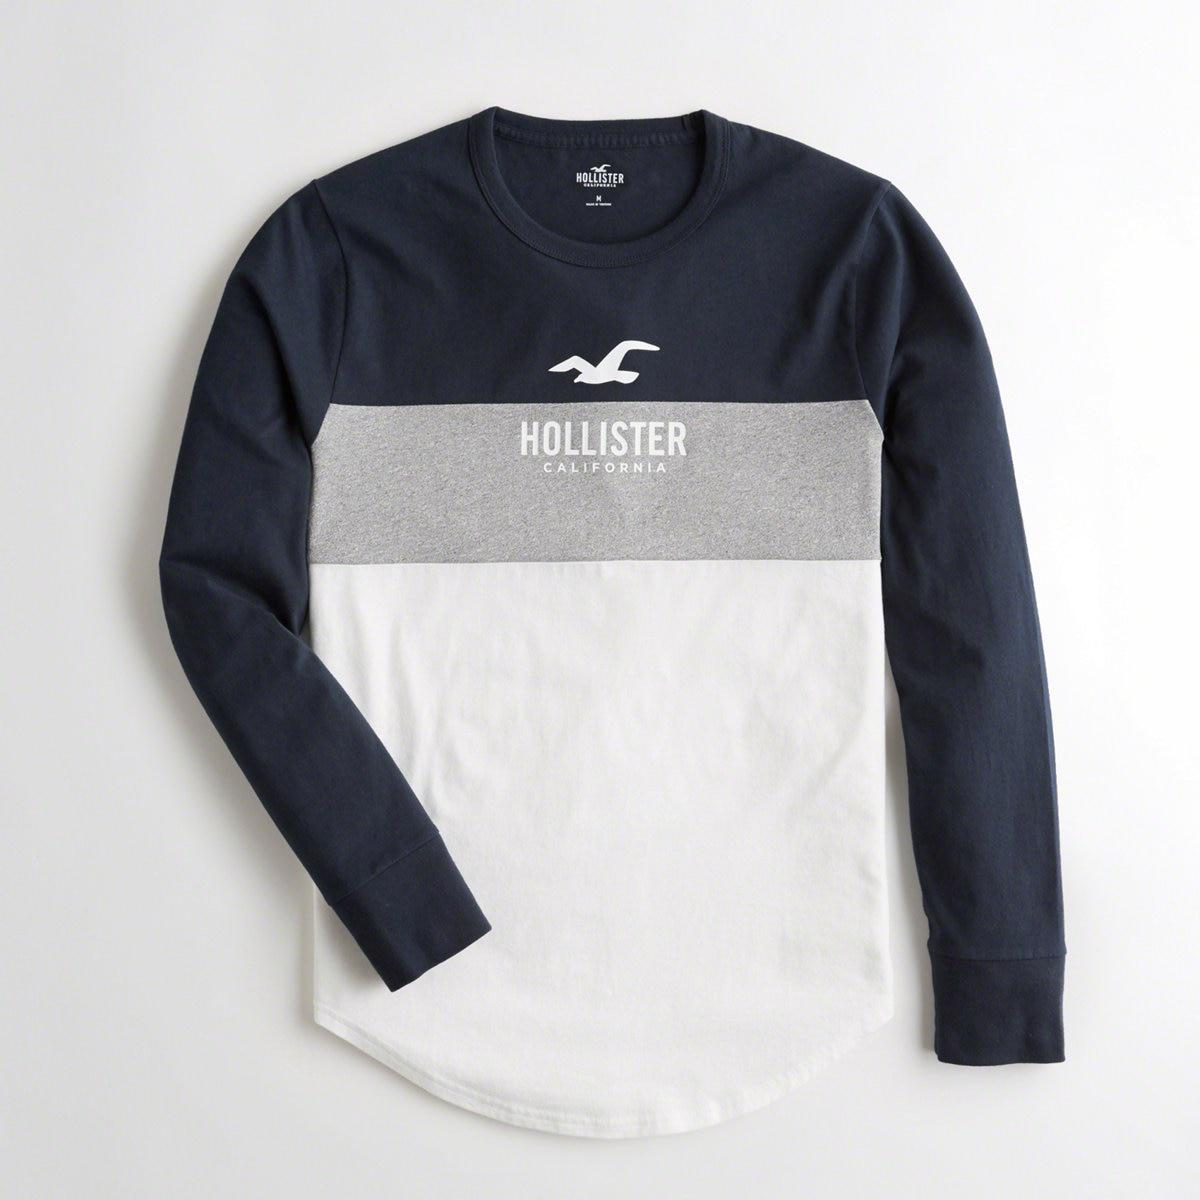 9a01bd2cf Lyst - Hollister Guys Colorblock Logo Graphic Tee From Hollister in ...